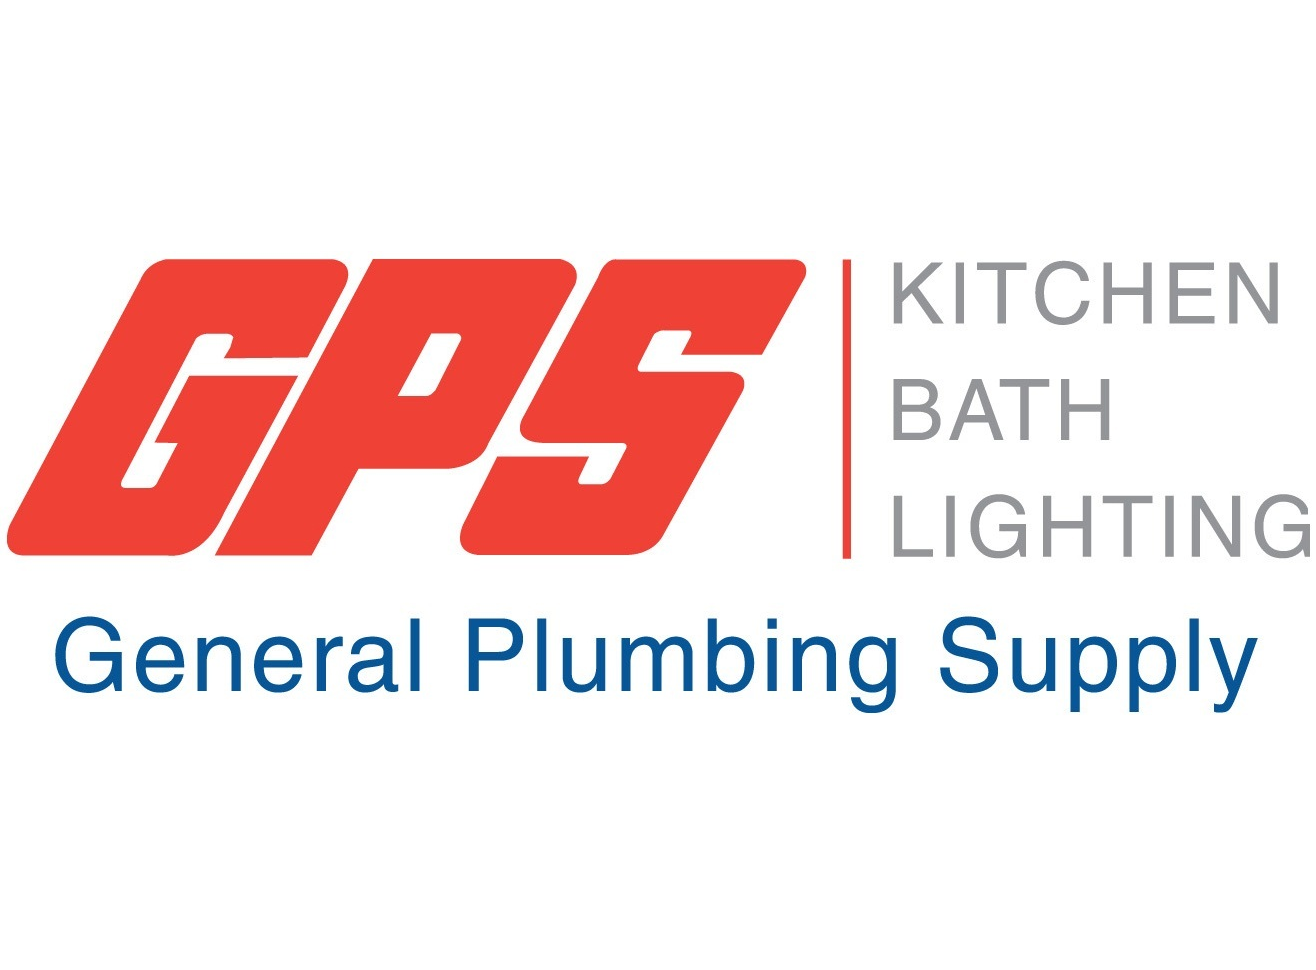 Home supply hawthorne nj - Logo For General Plumbing Supply